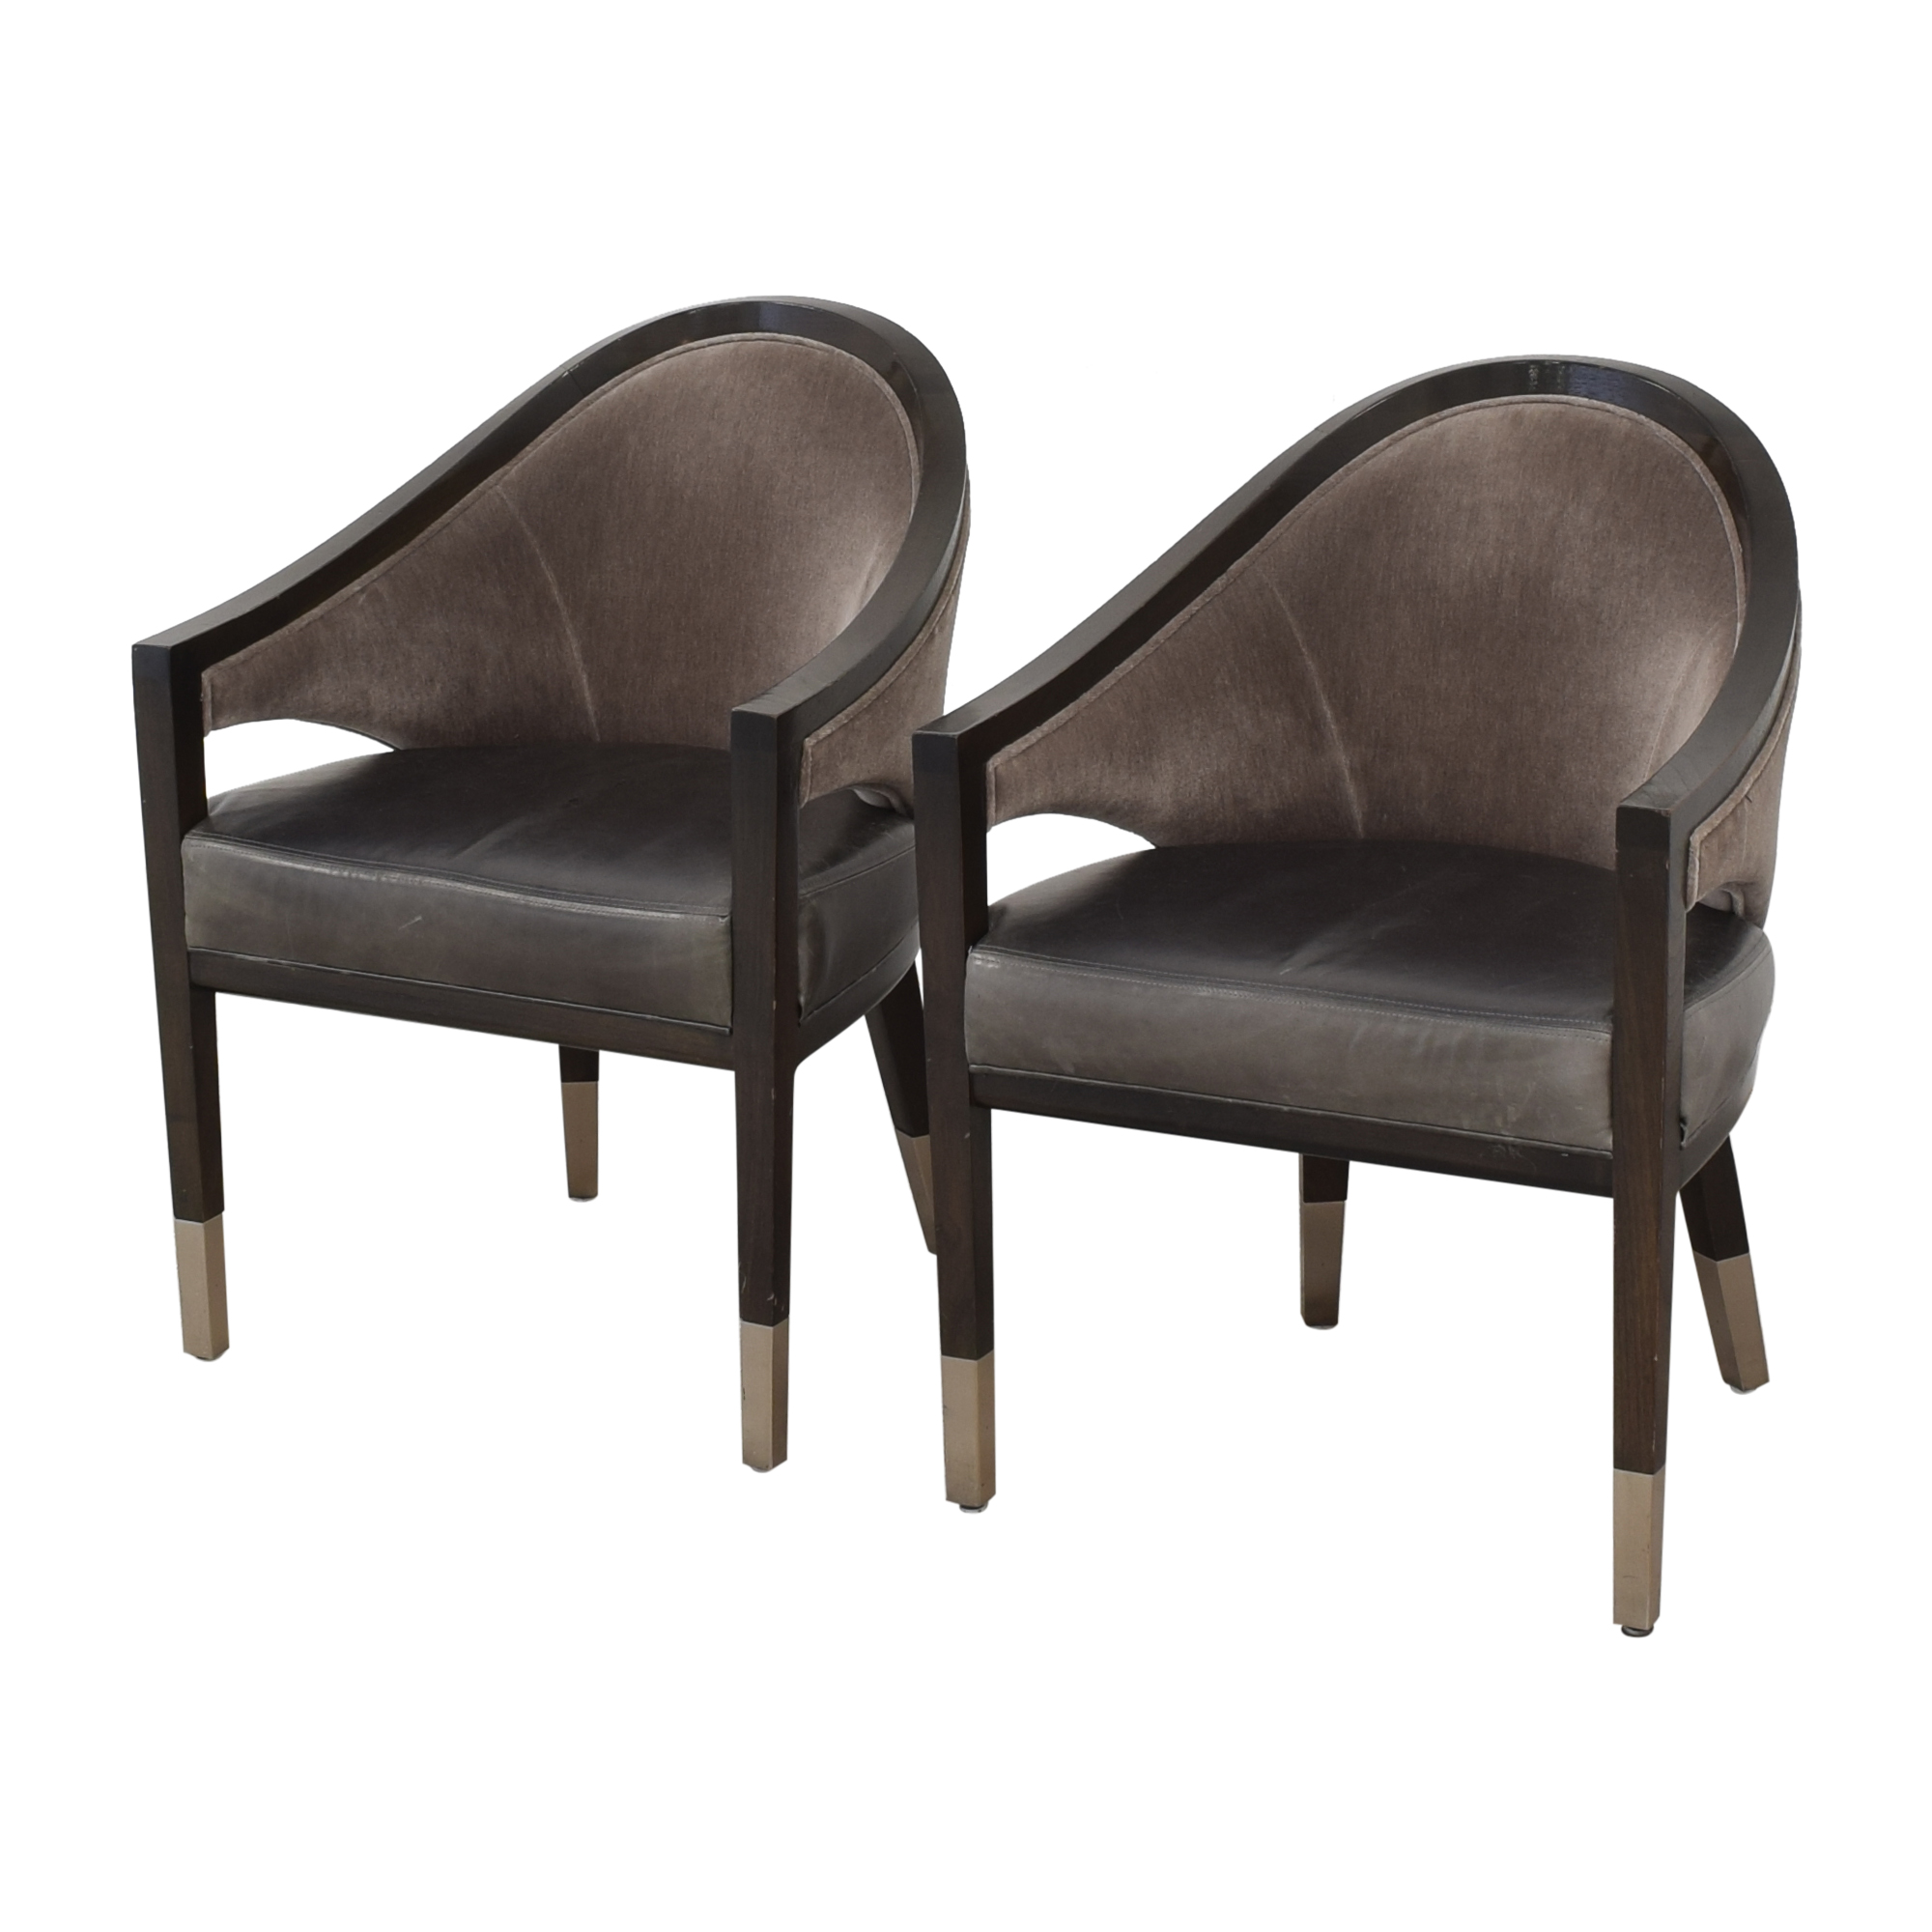 Allied Form Works Allied Works Eleven Madison Park Dining Room Chairs on sale